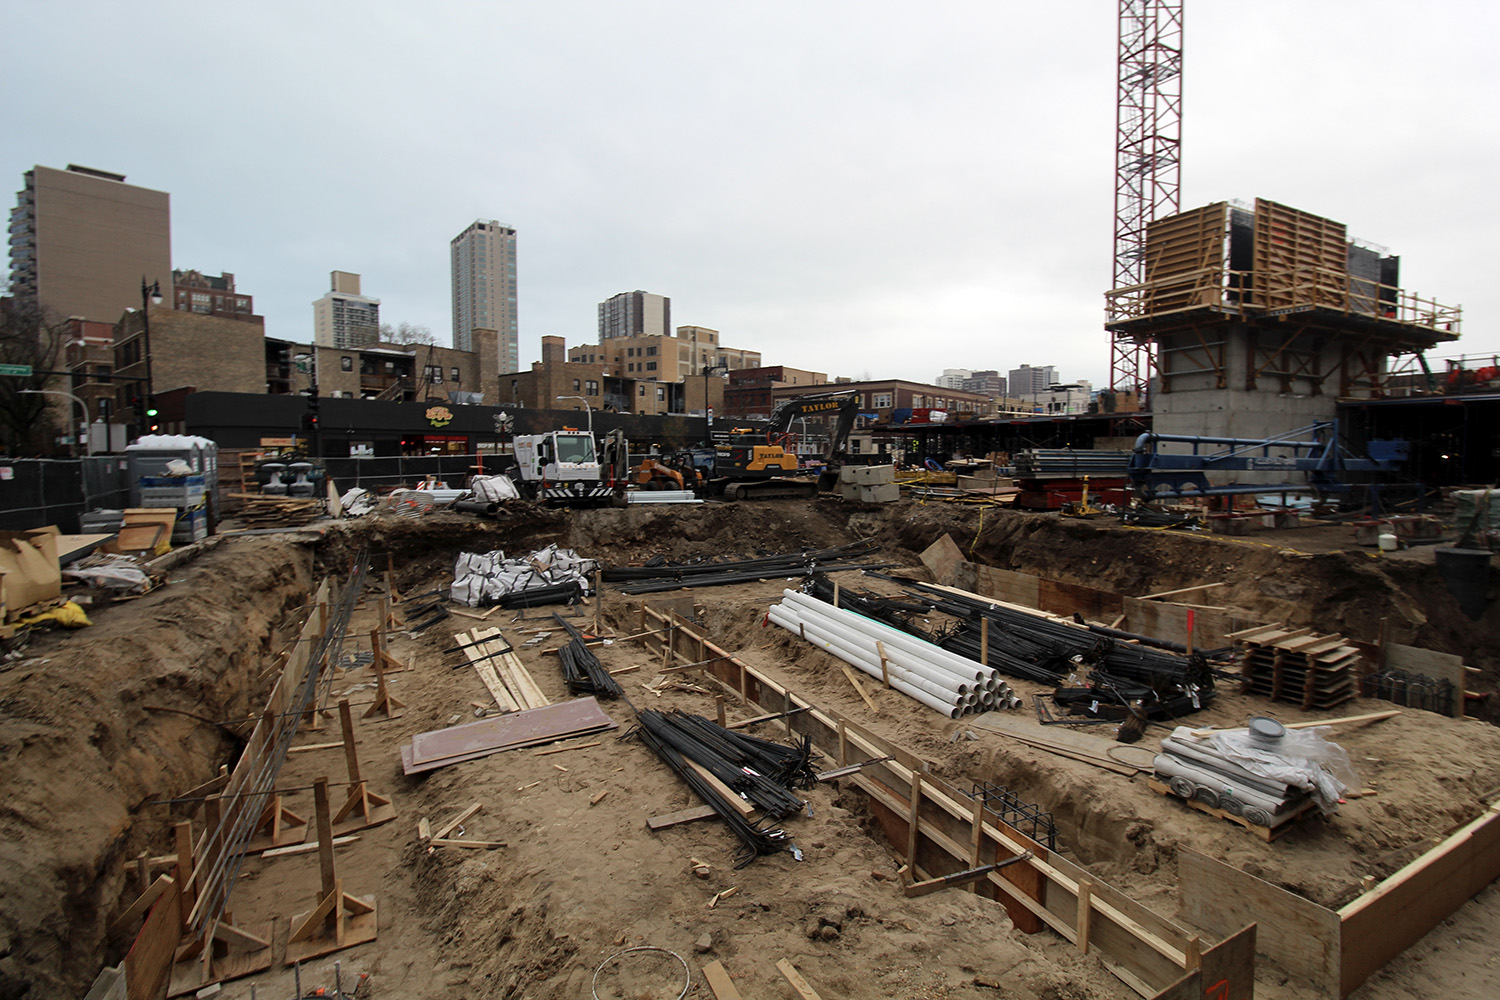 Construction at Optima Lakeview. Image by Jack Crawford